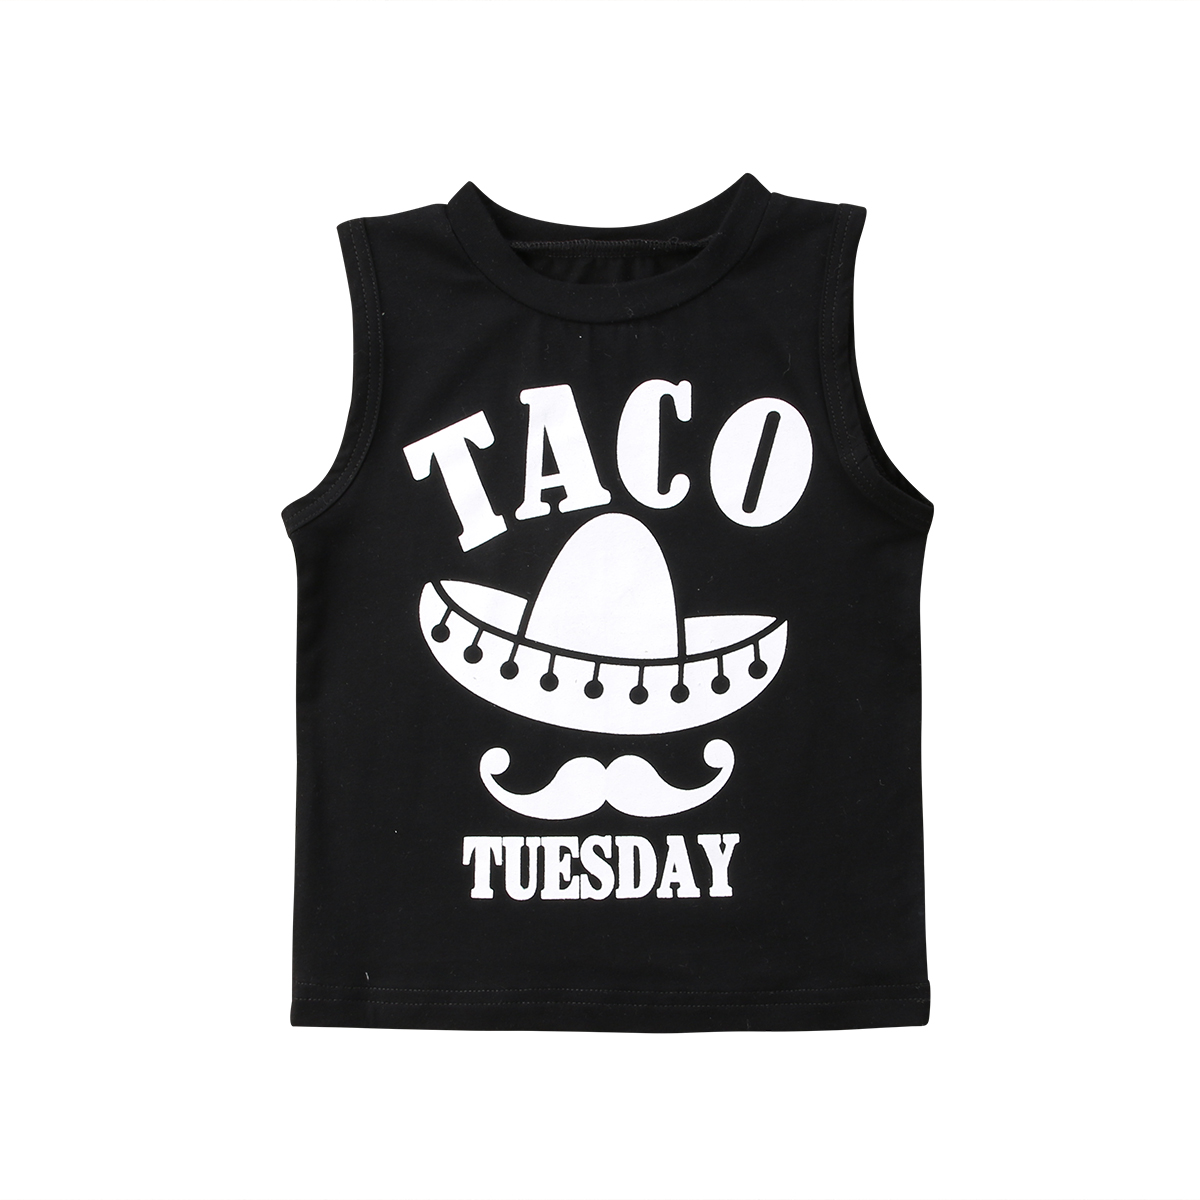 Pudcoco Toddled Baby Kids Boys Girls T Shirt Vest Taco Black Sleeveless Casual Baby Clothes T Shirts 2018 Summer Hot Sale trendy one button sleeveless lace hem black asymmetric t shirt for women